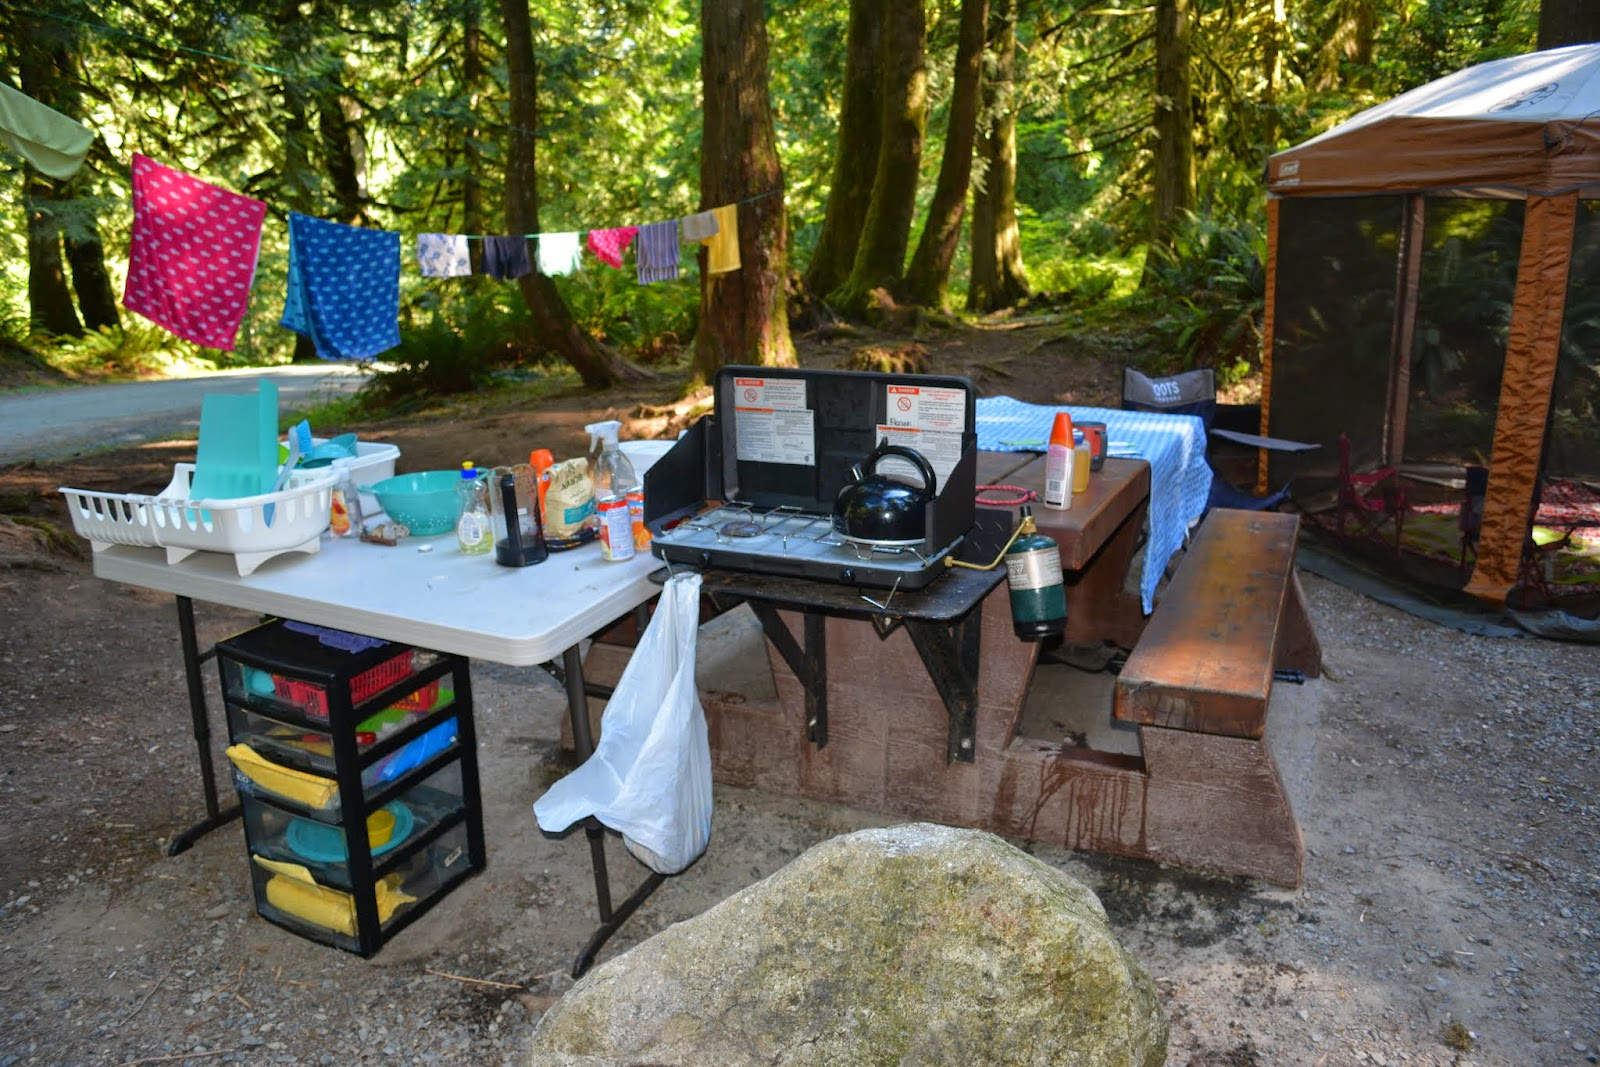 camping kitchen - Camping Kitchen